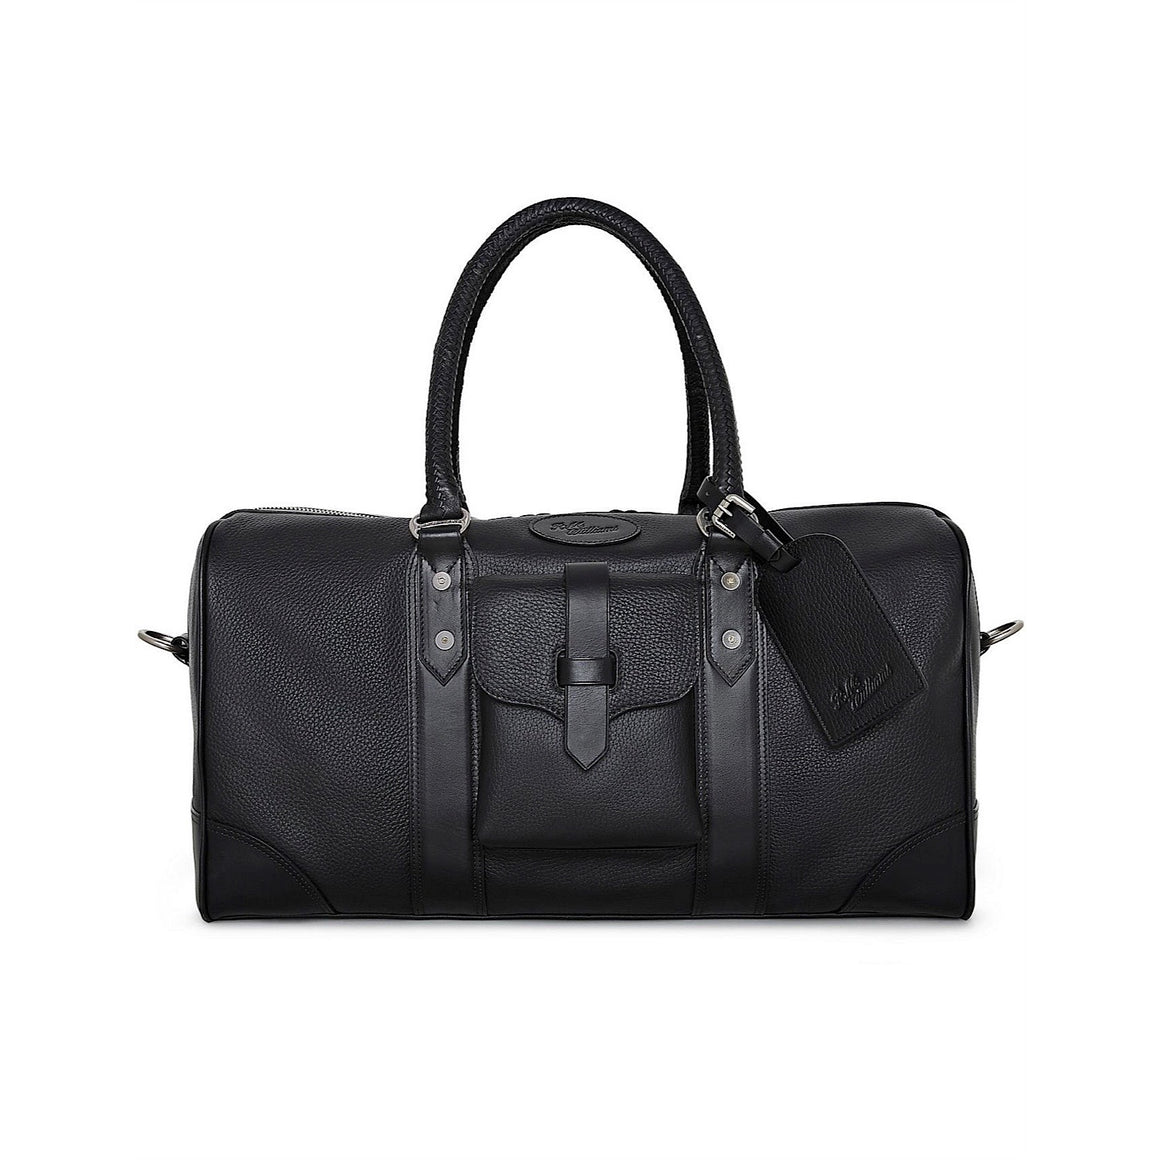 R.M.Williams Signature Overnight Bag Black